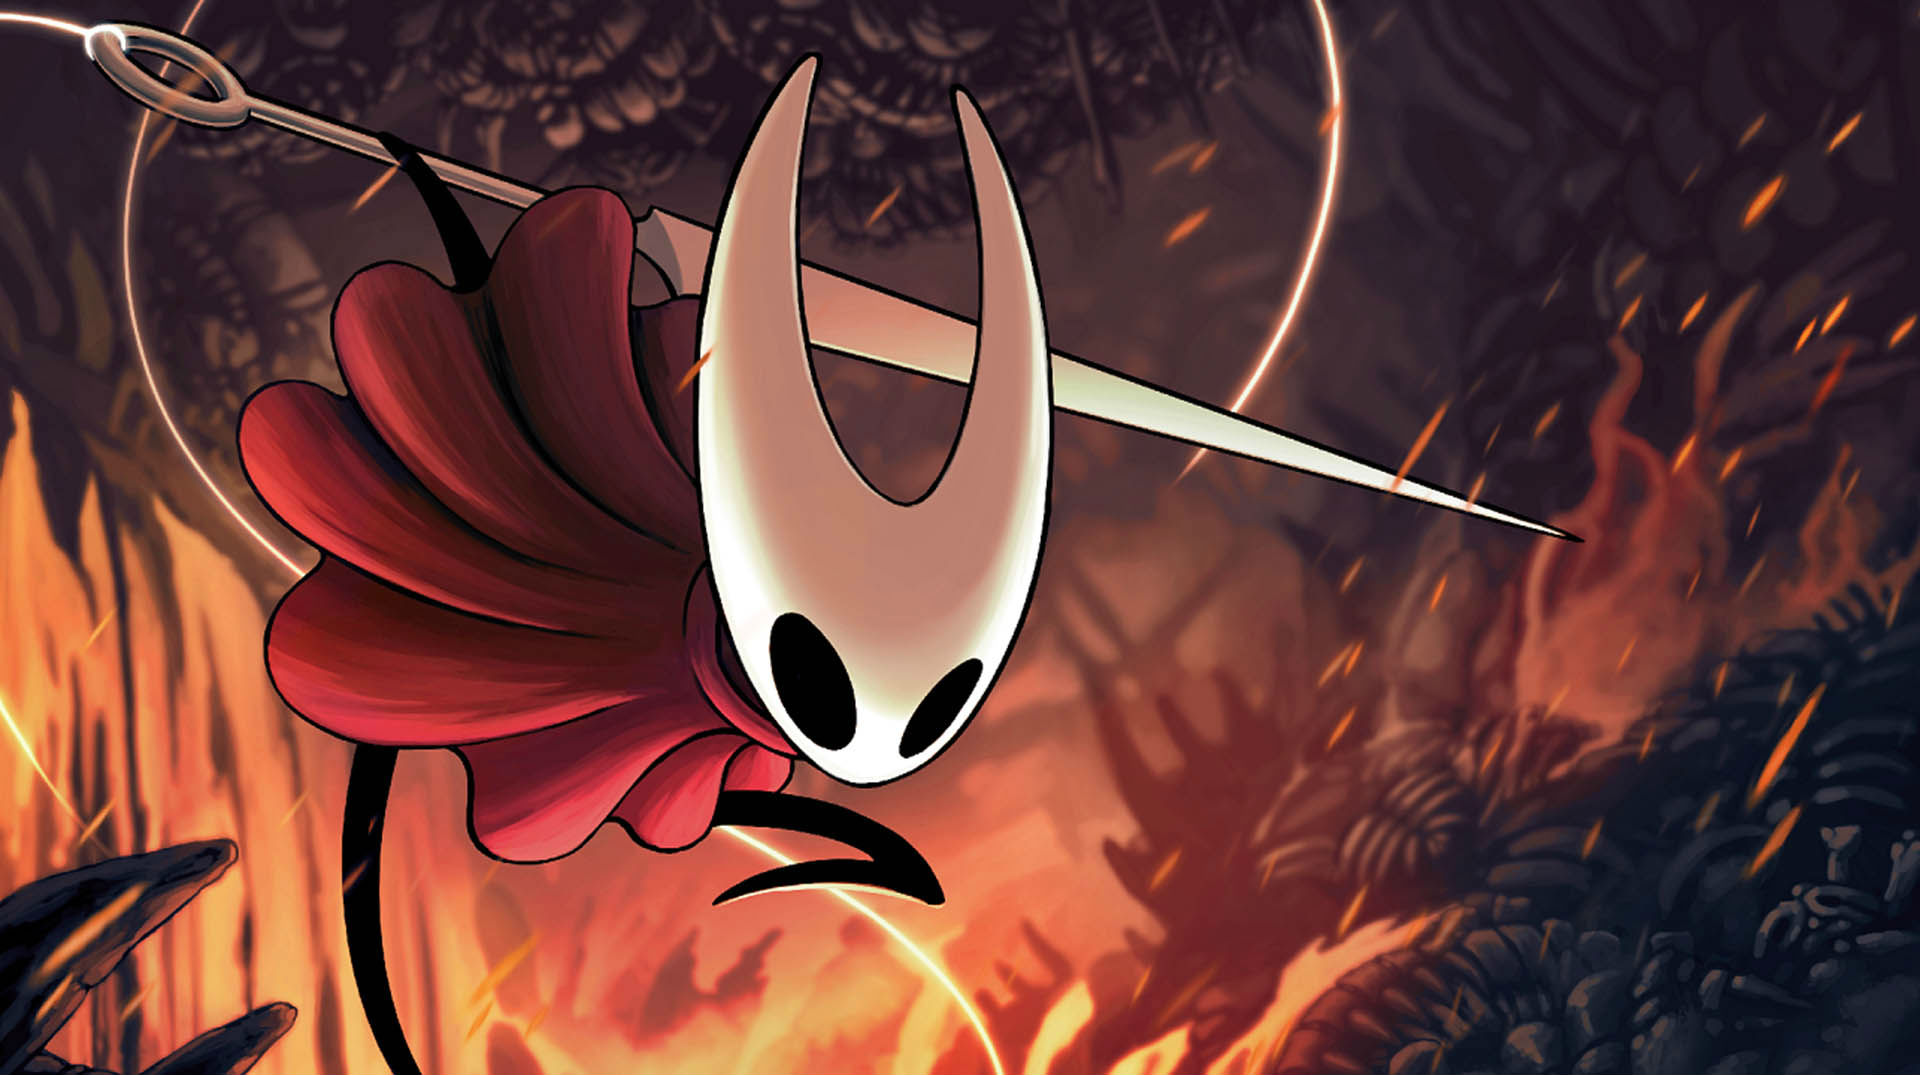 The Hollow Knight sequel, Silksong, is looking good screenshot